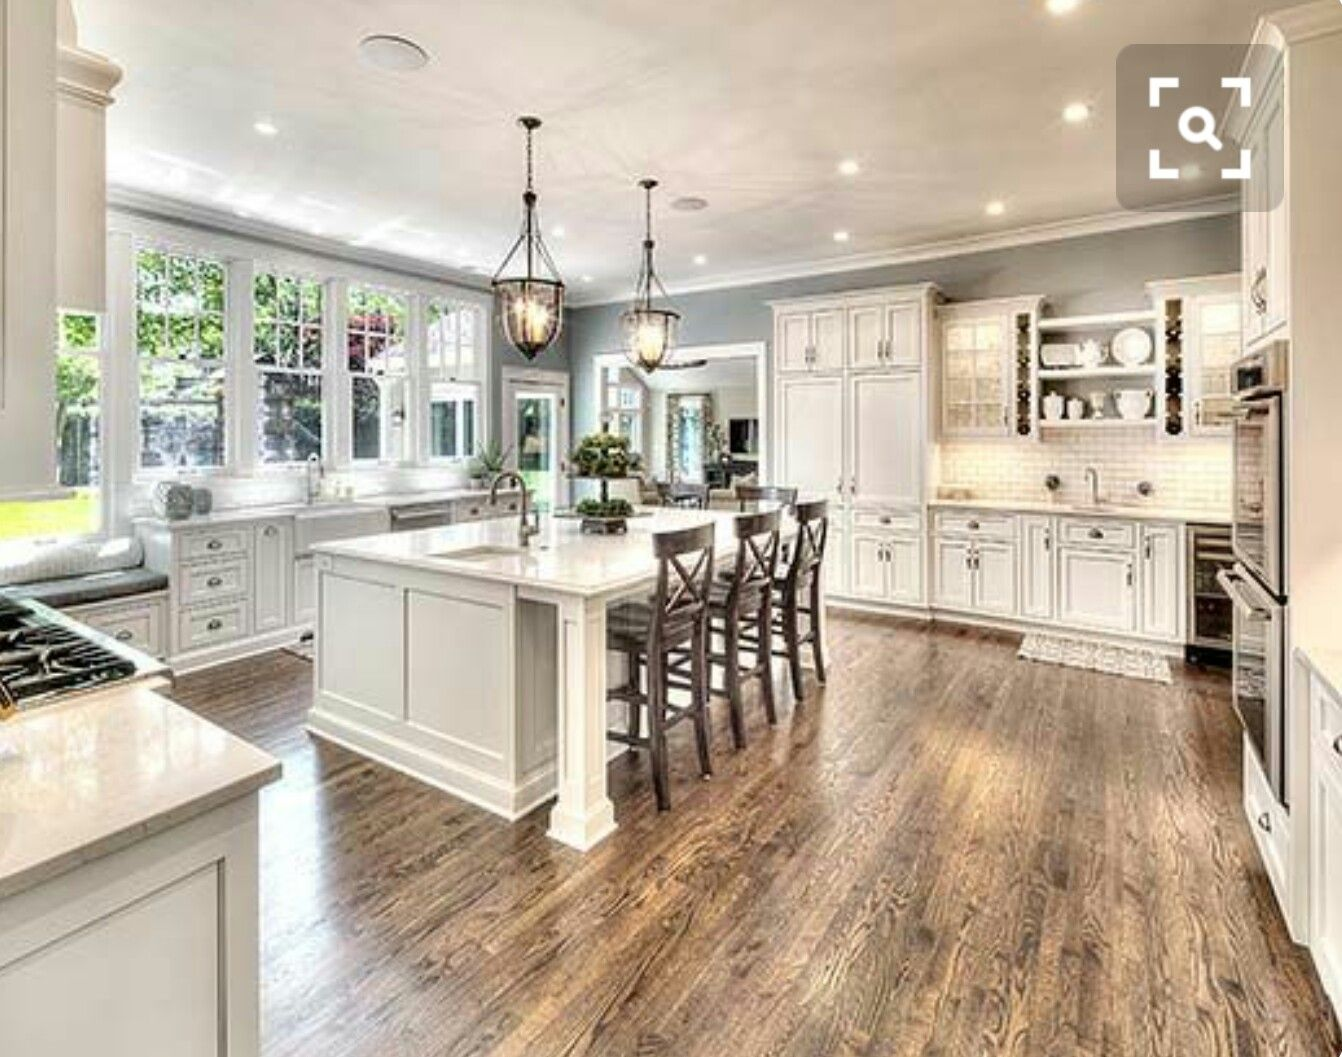 Farmhouse Kitchen Tile Floors White Cabinets With Creamy Beige Granite Countertops Dove